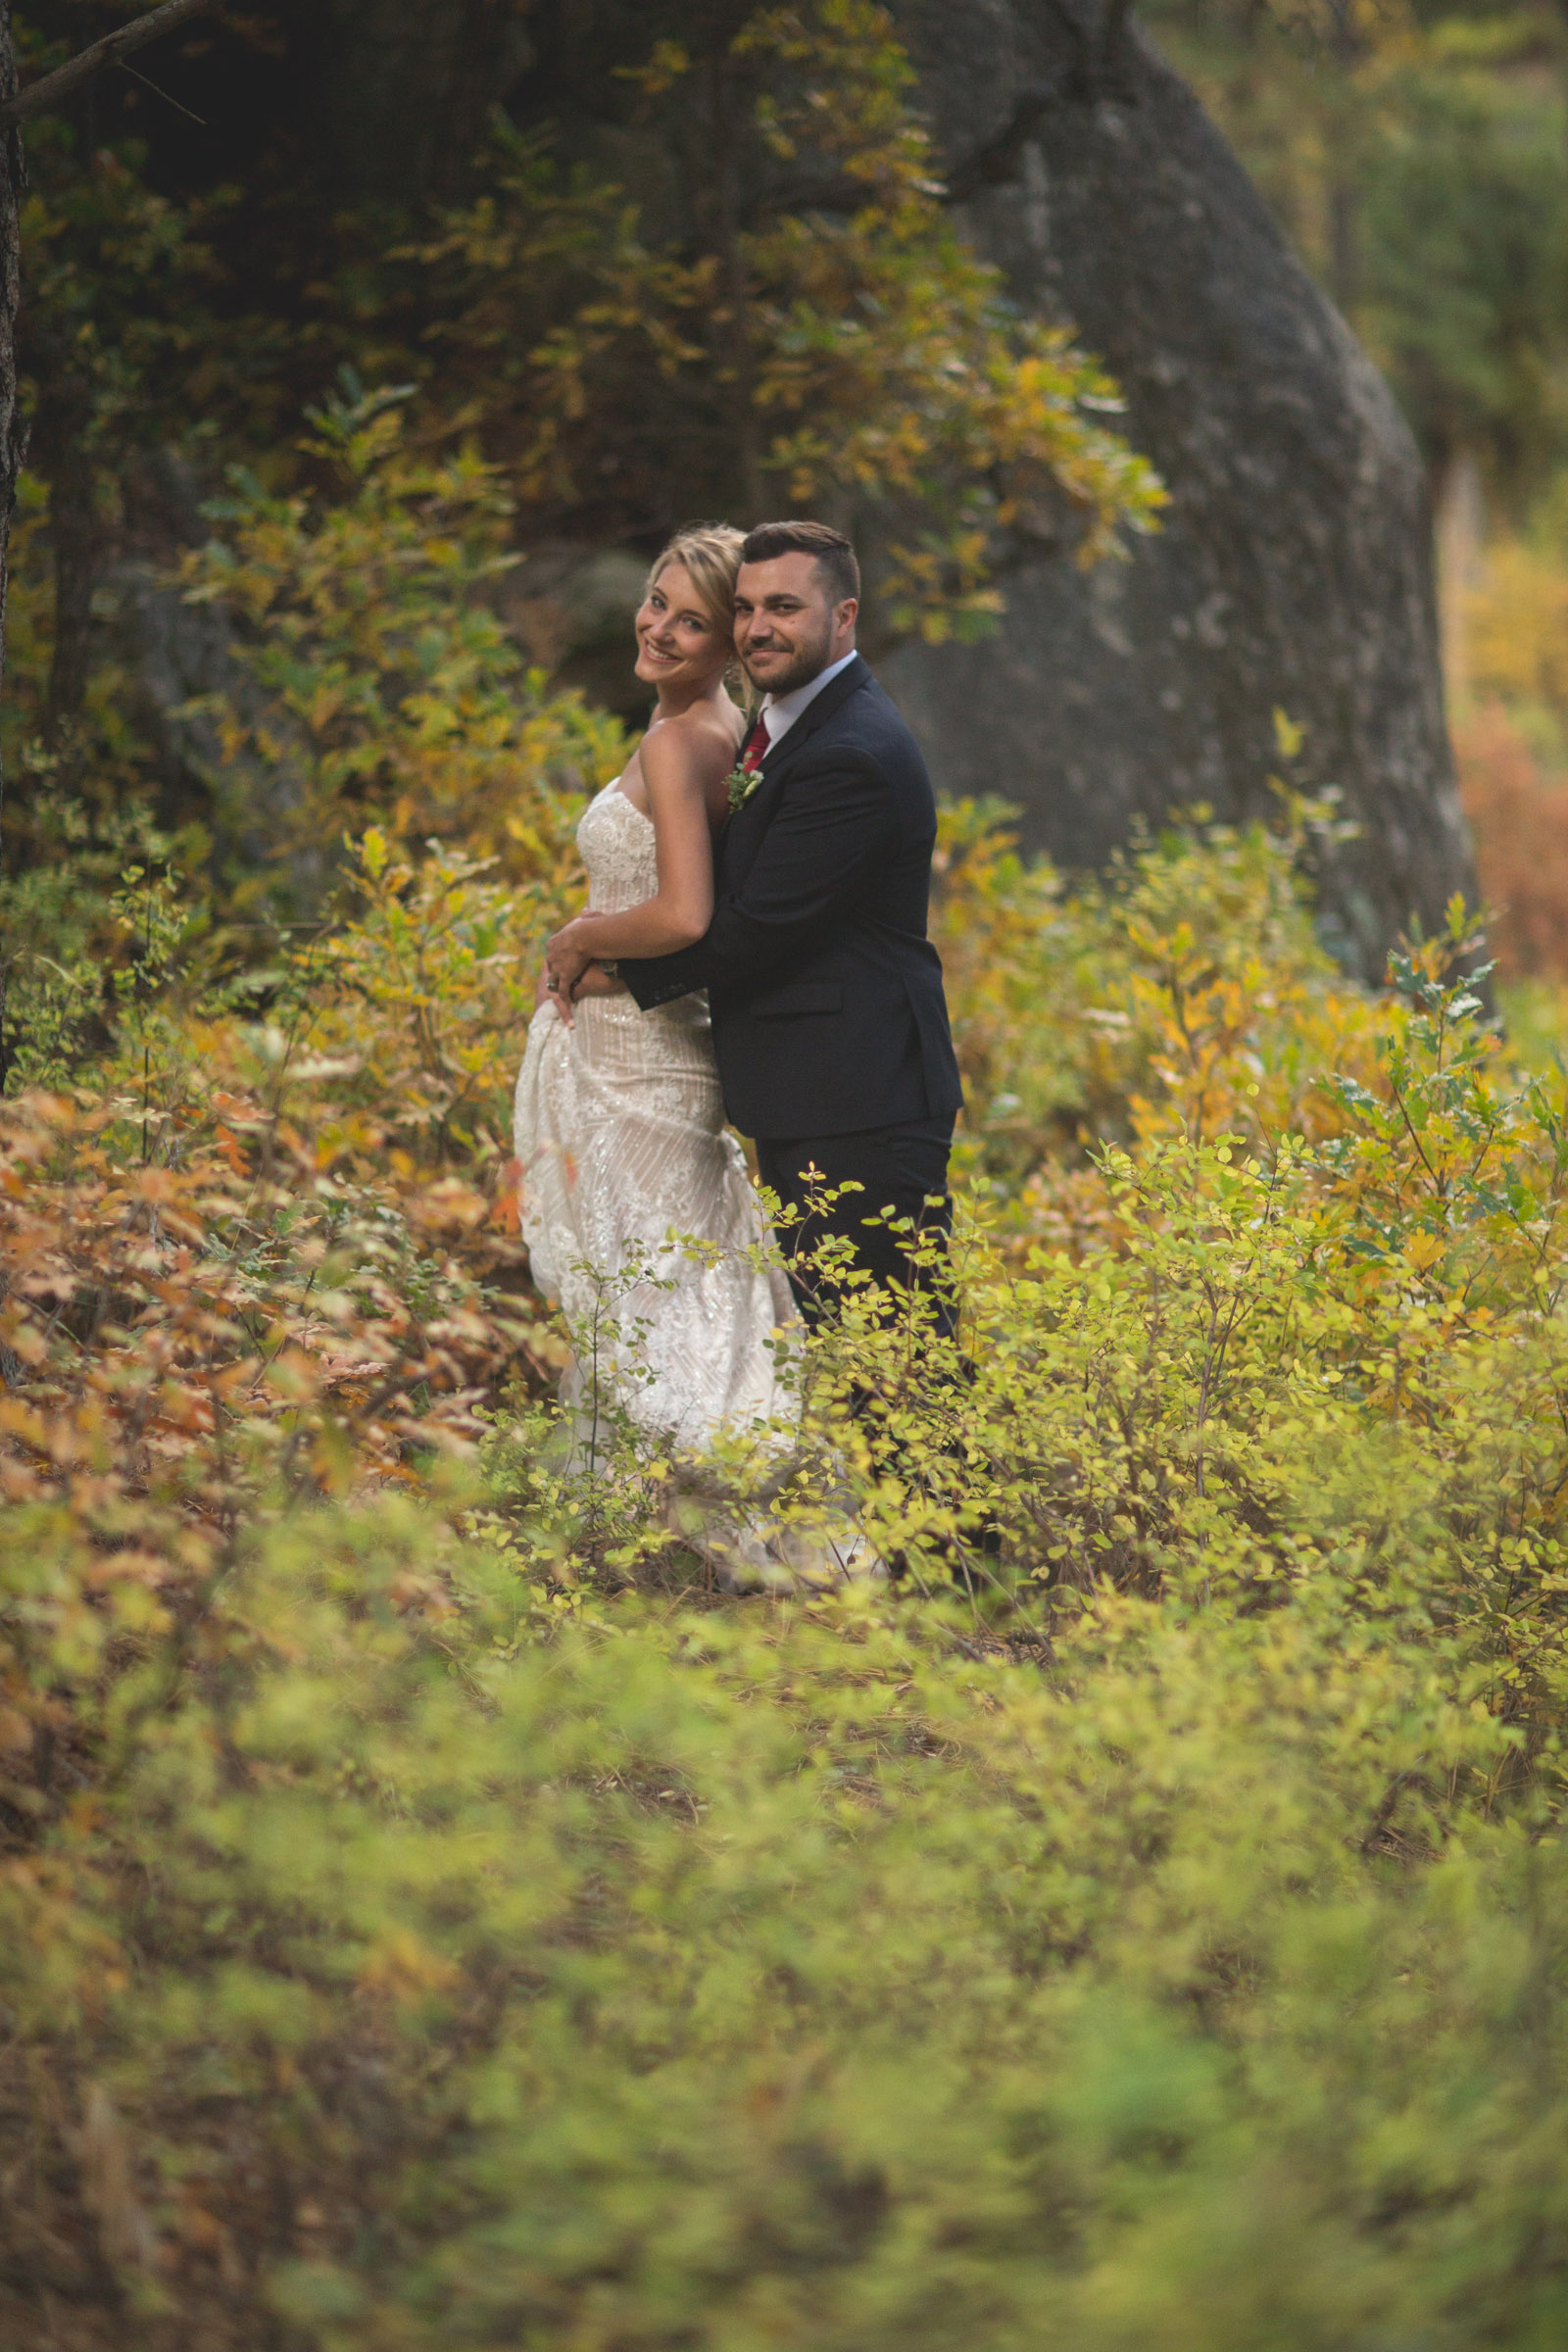 160-beautiful-bride-and-groom-photojournalist-portraits-at-elopement-wedding-in-durango-colorado-forest